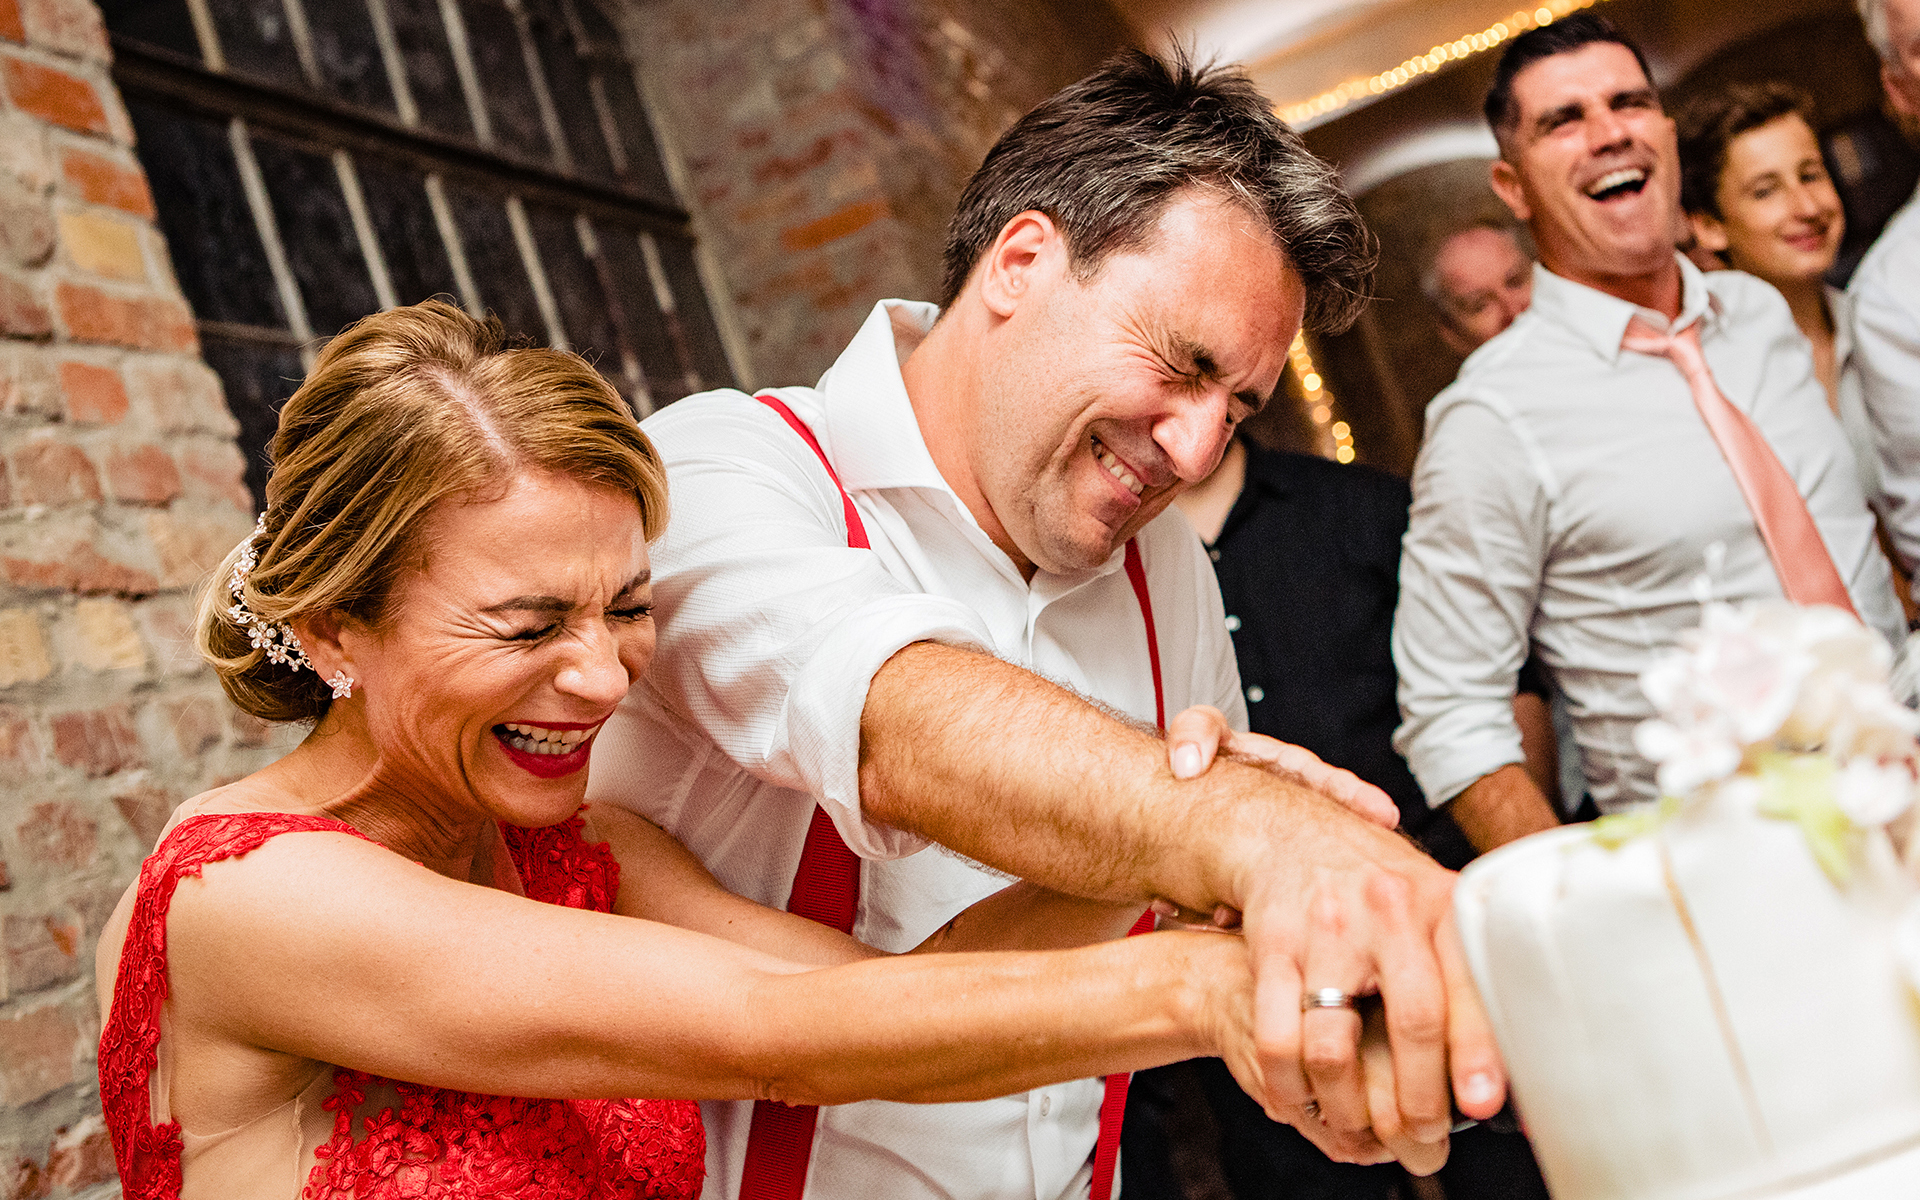 Bride and the groom are cutting the cake in this wedding photo under extreme difficulty.